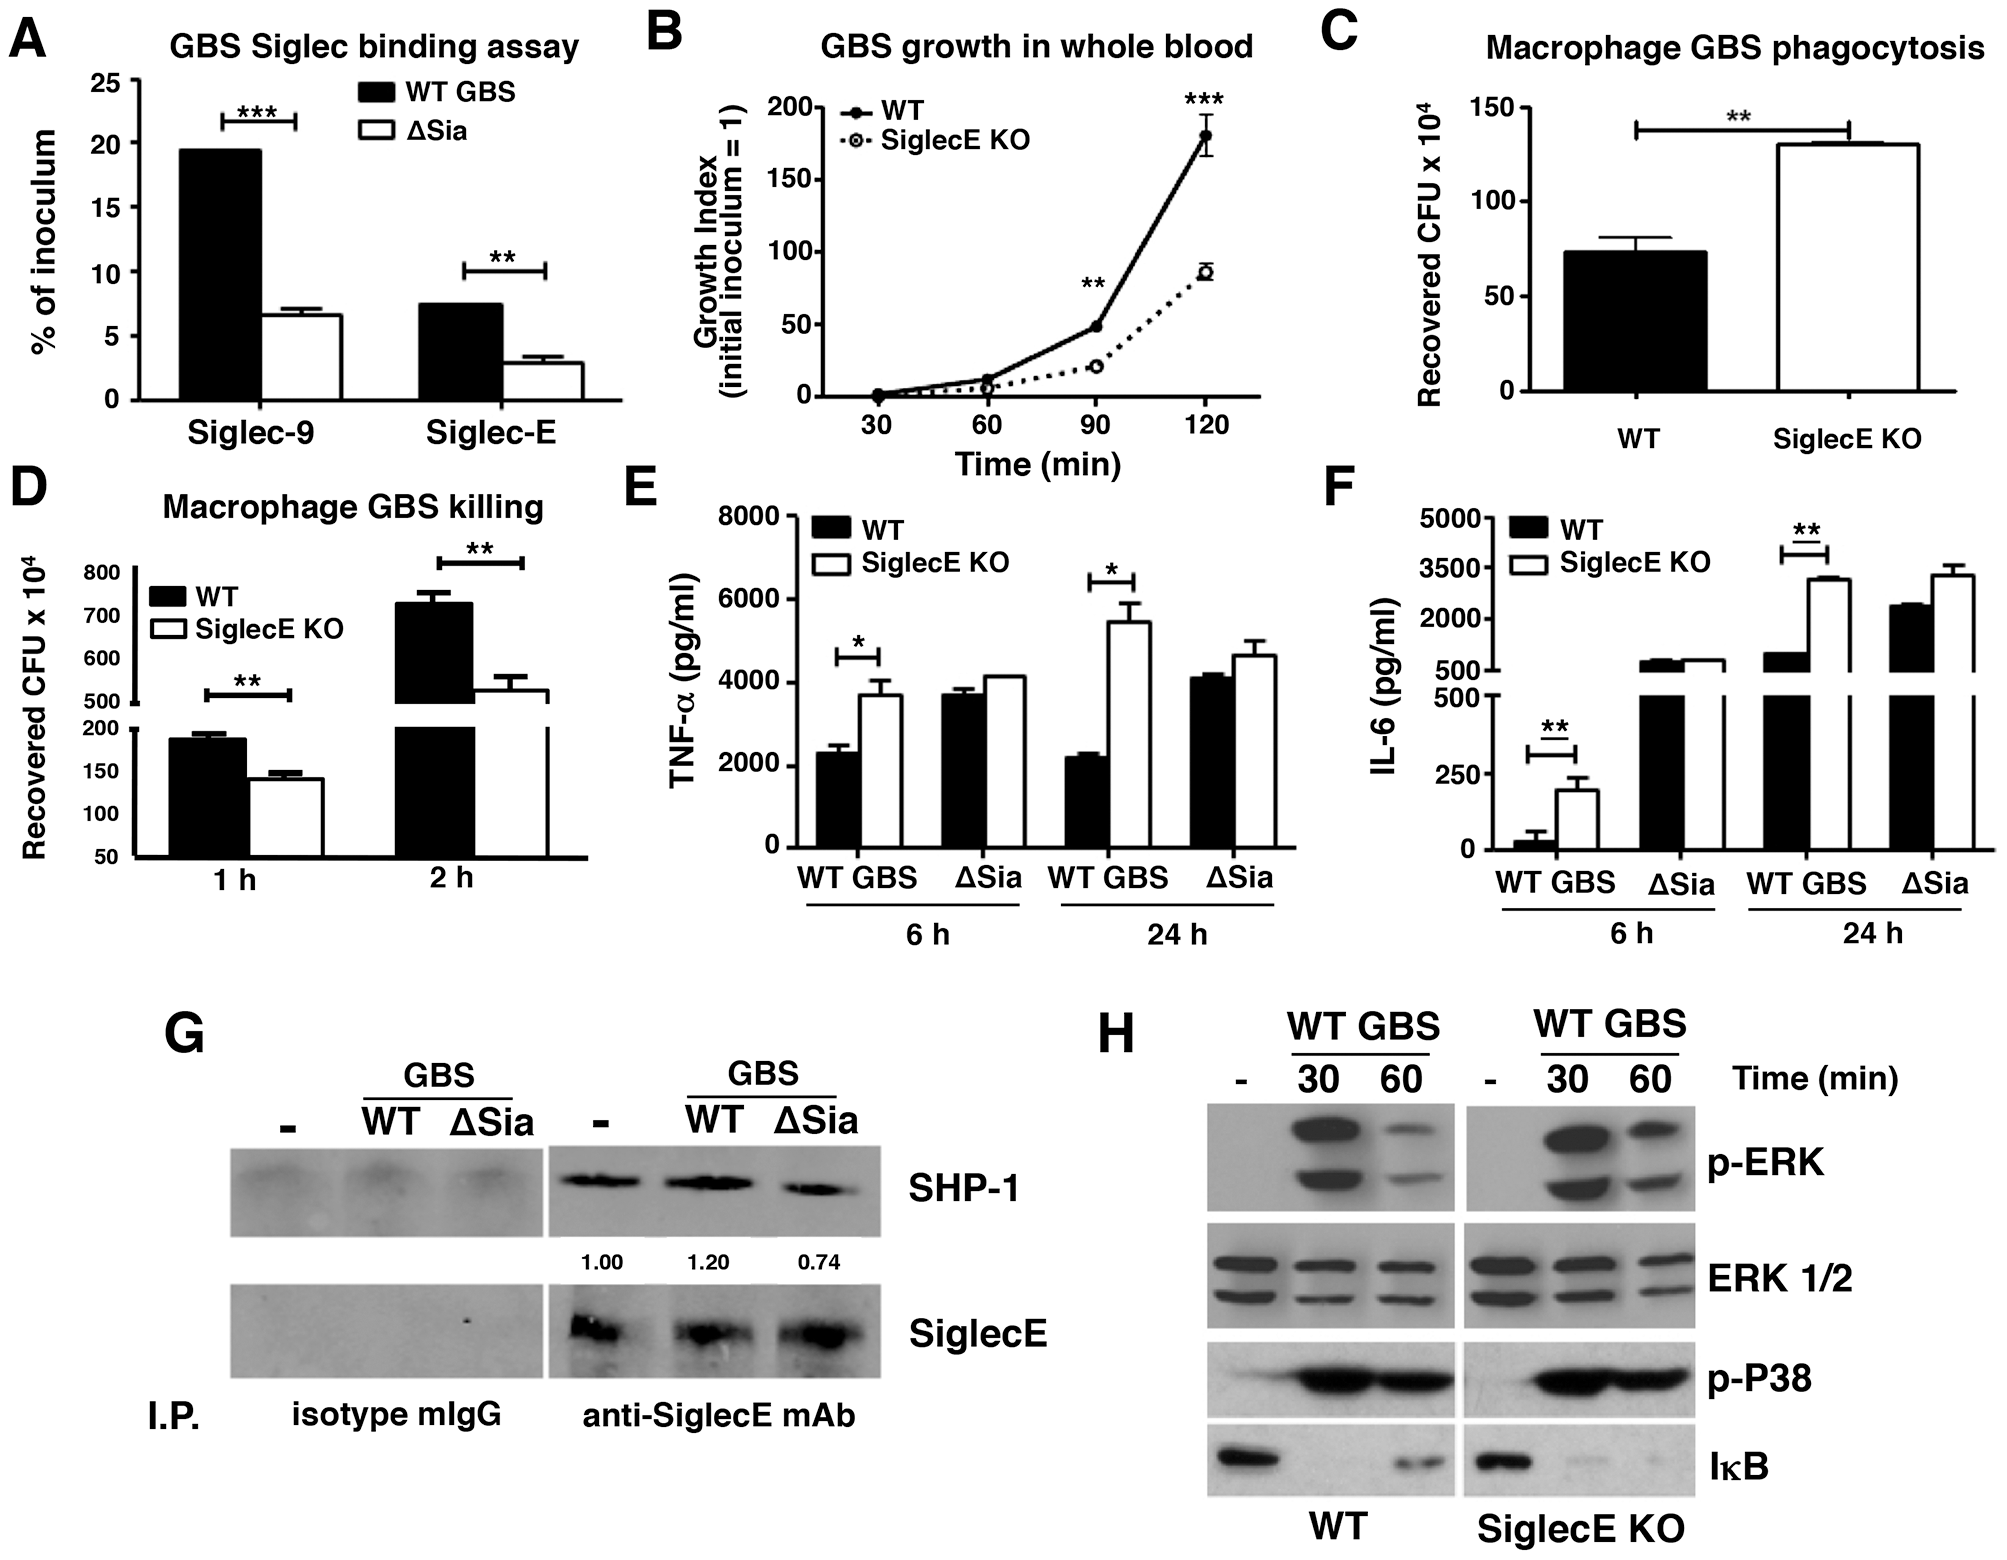 Augmented bactericidal activity in bone marrow-derived macrophages from Siglec-E KO mice.